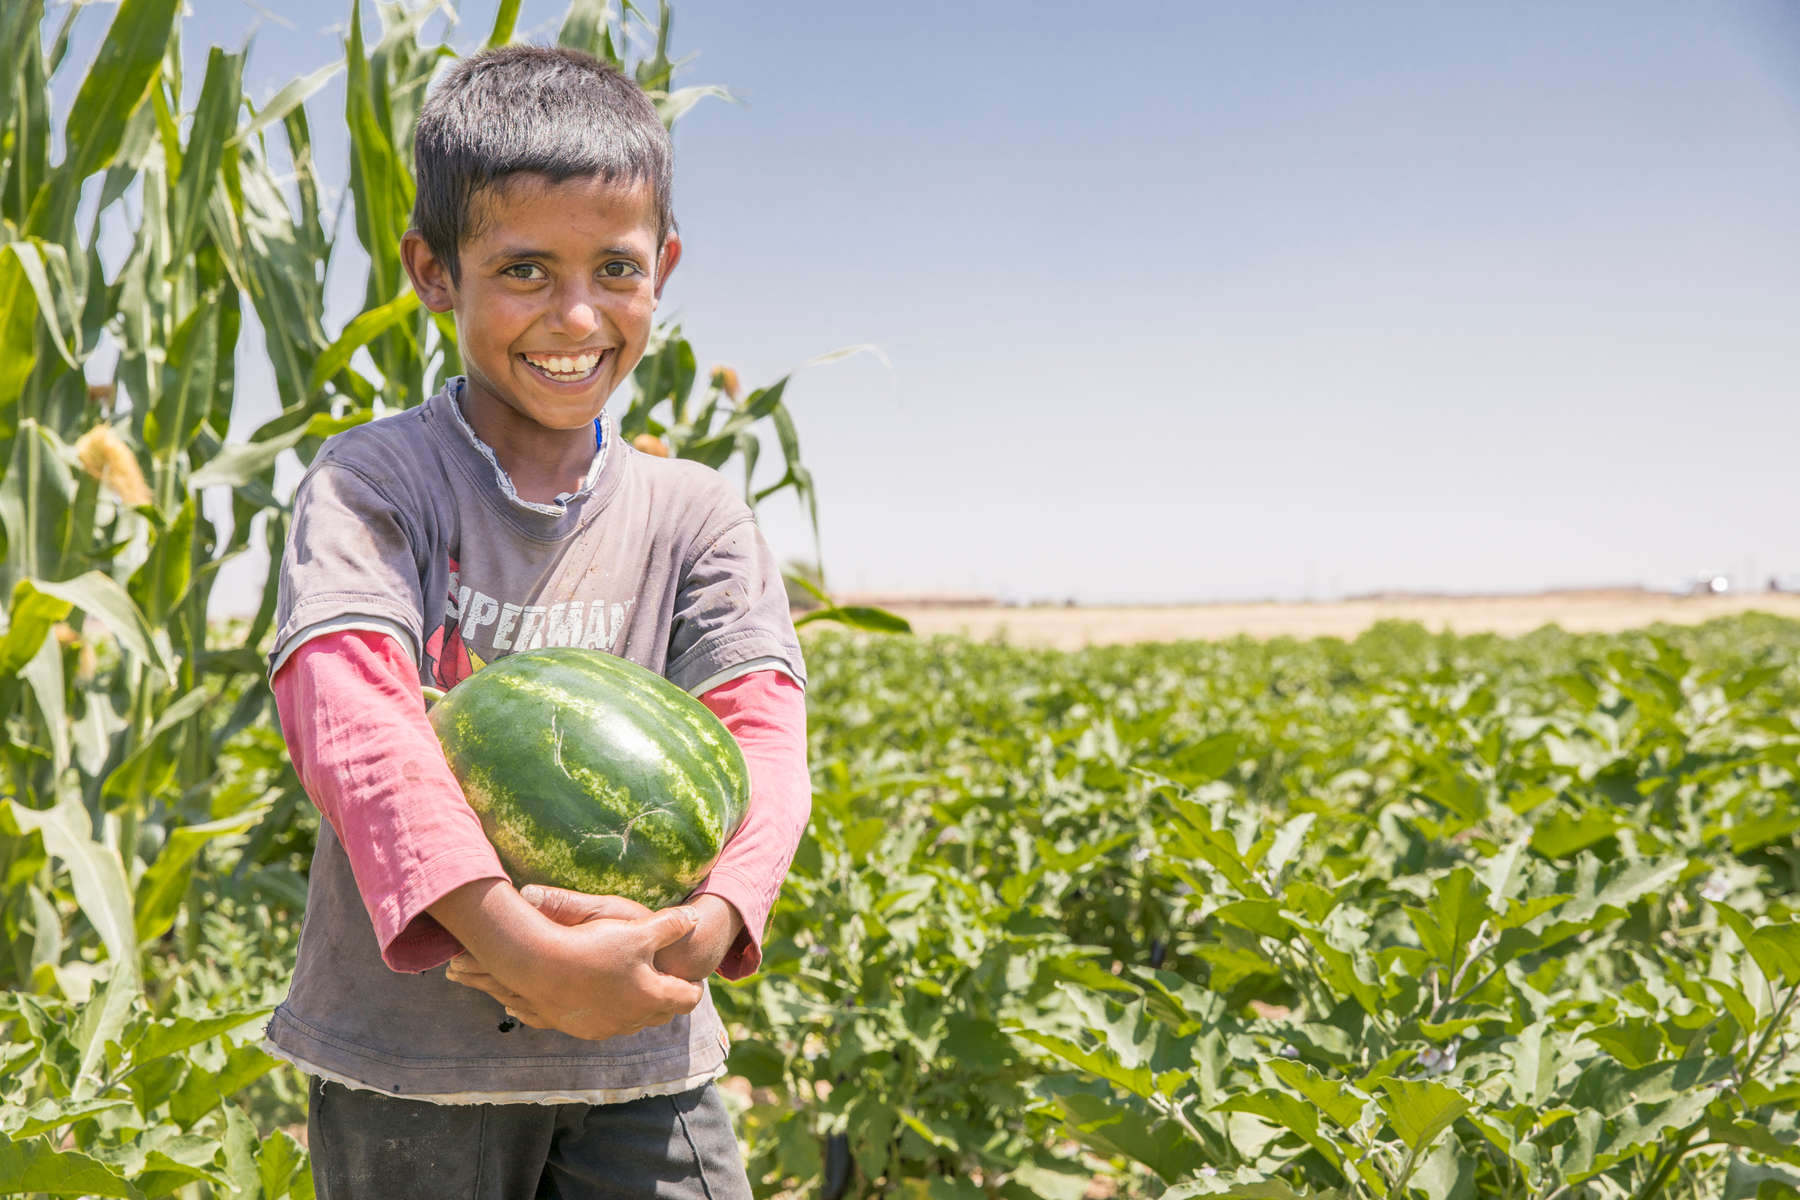 Abu Goubran's son Safouan, 12, harvests watermelon. Abu Goubran does not own land, but has significant agricultural expertise thanks to a lifetime spent working in farming. Mercy Corps connected him to a landowner who was interested in benefiting from that expertise, and provided some resources to improve the farm, including building a greenhouse. Together, they have seen yields increase dramatically. The greenhouse generates 10 times the yield of the same area of land not under a greenhouse, Abu Goubran says. The use of greenhouses is not common in this area, so they were the first to be able to grow out of season vegetables. They use organic methods, with an apiary on site to pollinate the fields. They also open the farm to do training sessions for local farmers on innovative farming techniques.Between Abu Goubran, the landowner, the various laborers who work the fields and another partner who helps with purchasing supplies the farm directly supports four families. The village is home to another 400 families who benefit indirectly from reduced prices and a broader range of foods.